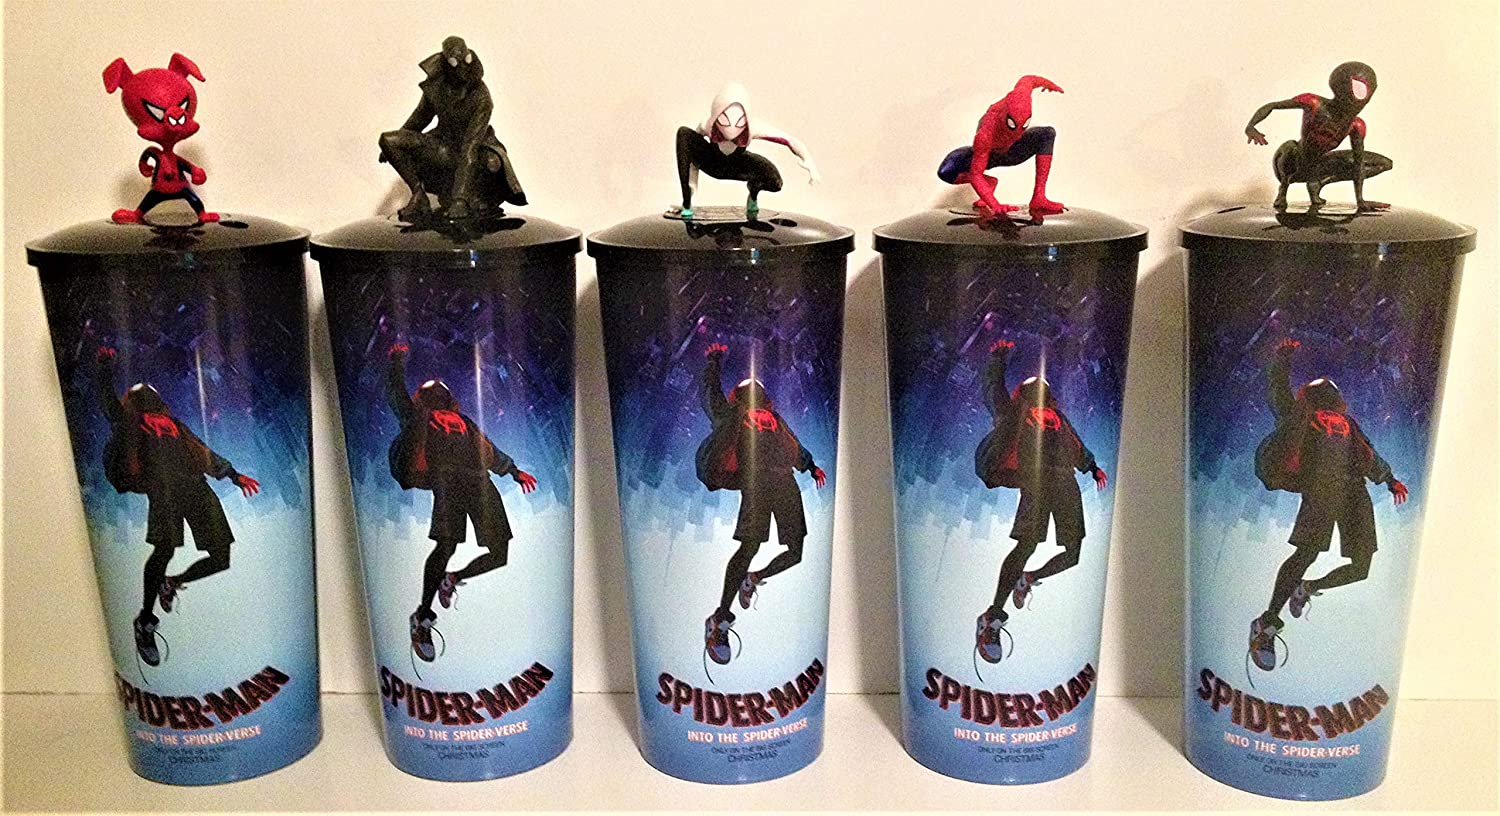 Spider-Man Into the Spider-Verse Movie Theater Exclusive Cup Topper Set With 44 oz Cups